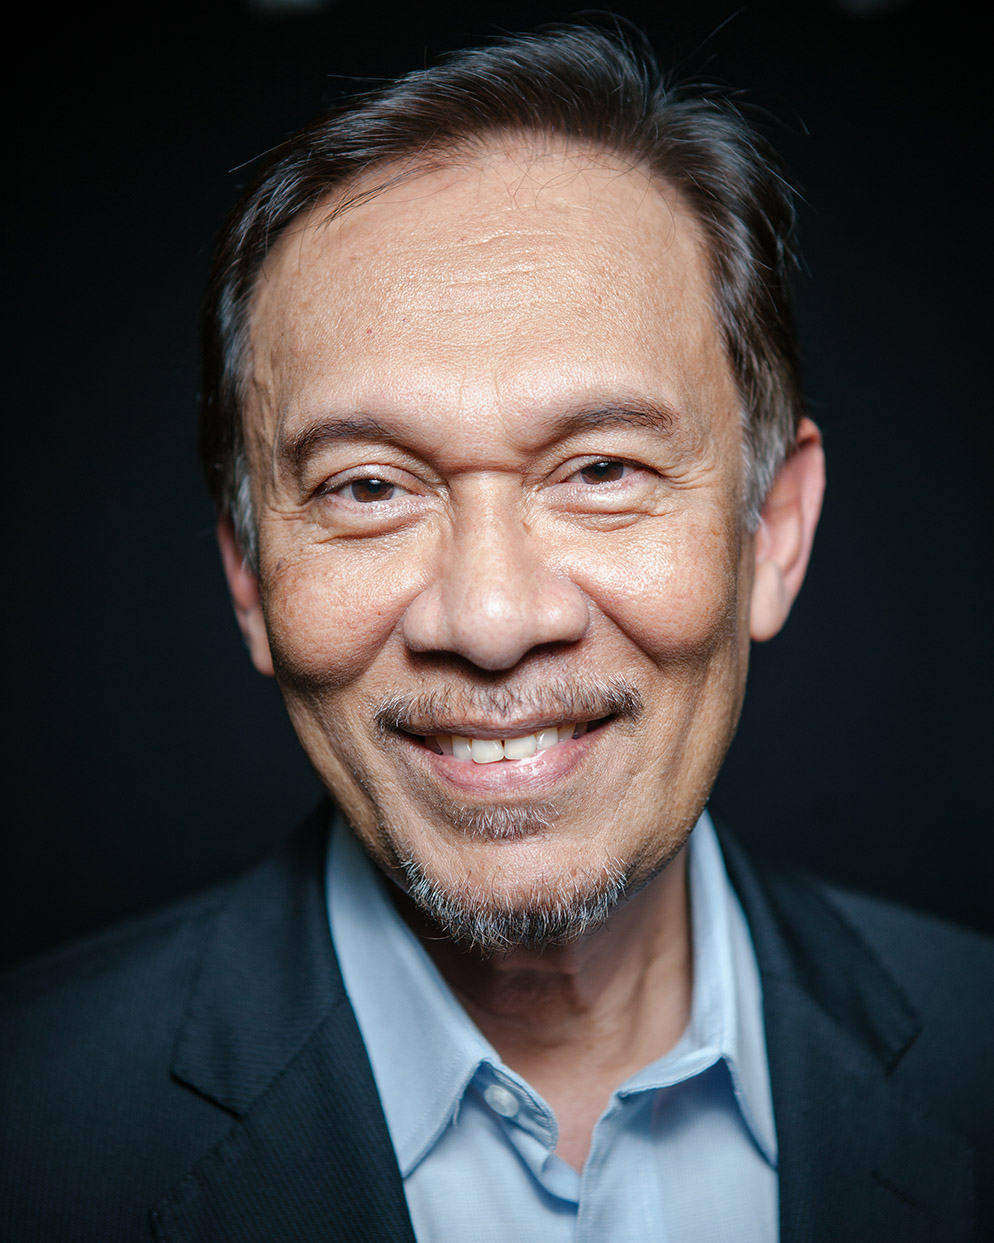 Anwar Ibrahim. Politician, Malaysia's opposition leader.